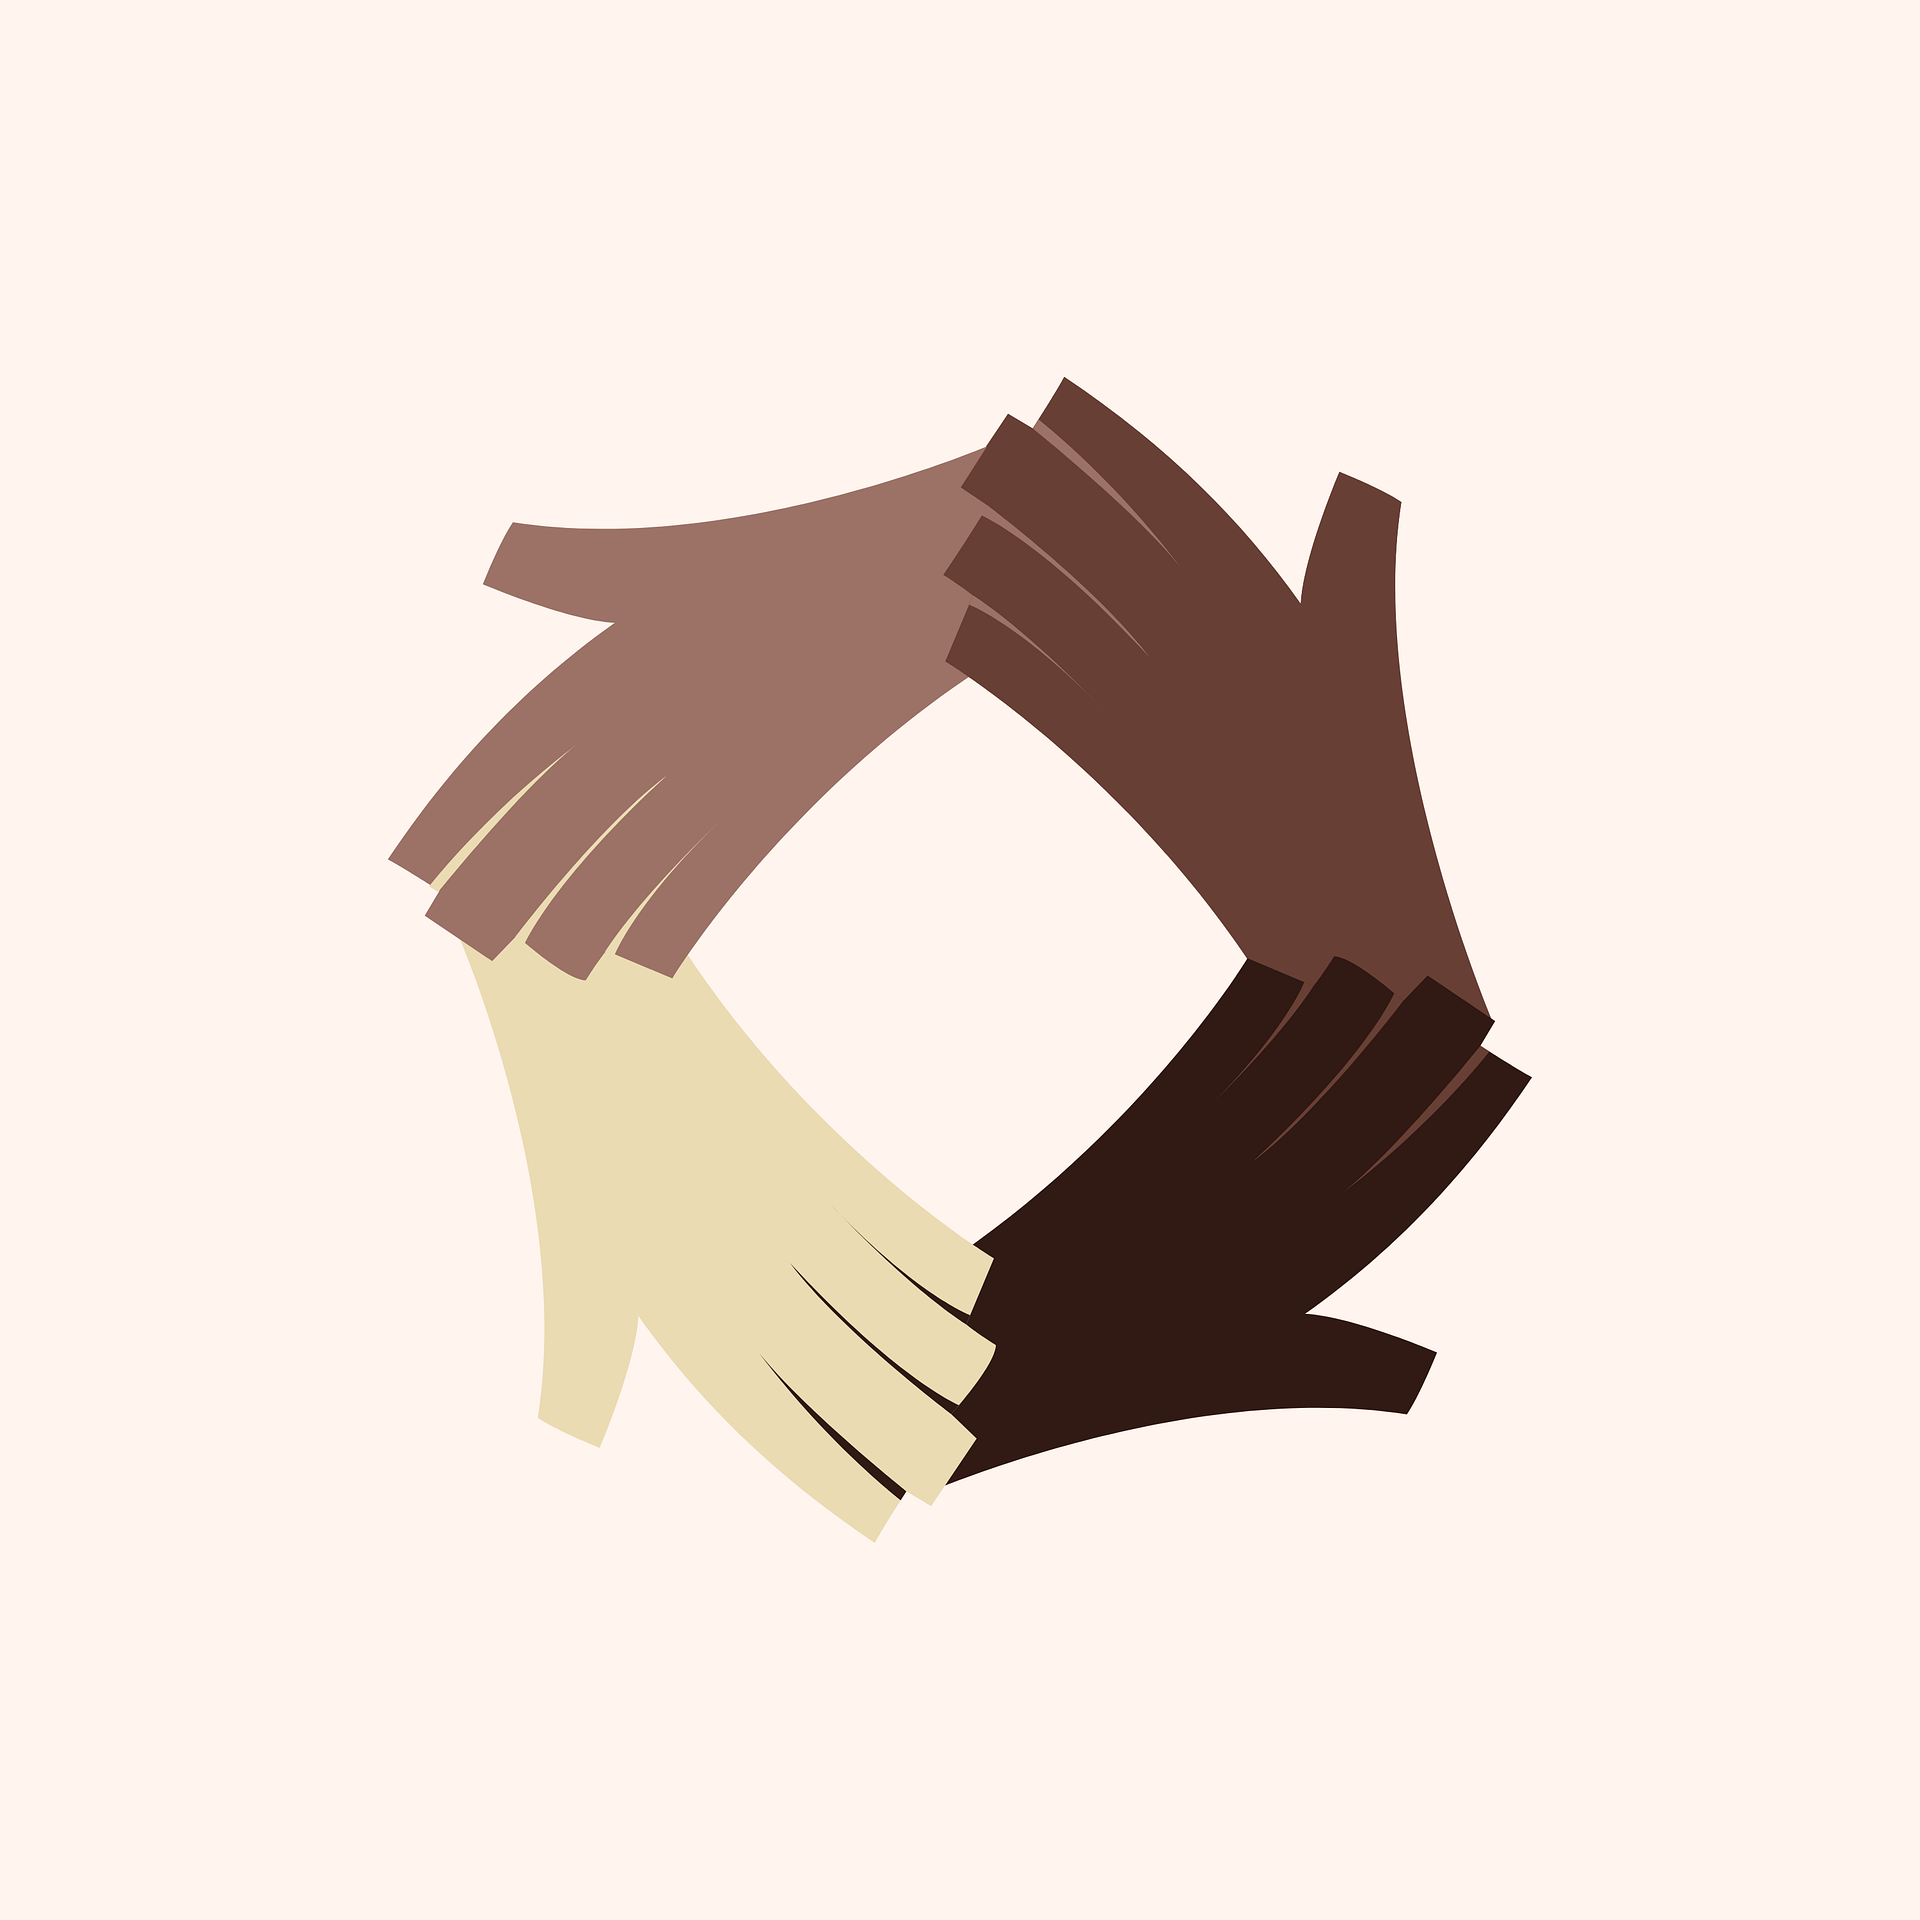 Four hands in varying shades of color joining together in a circle